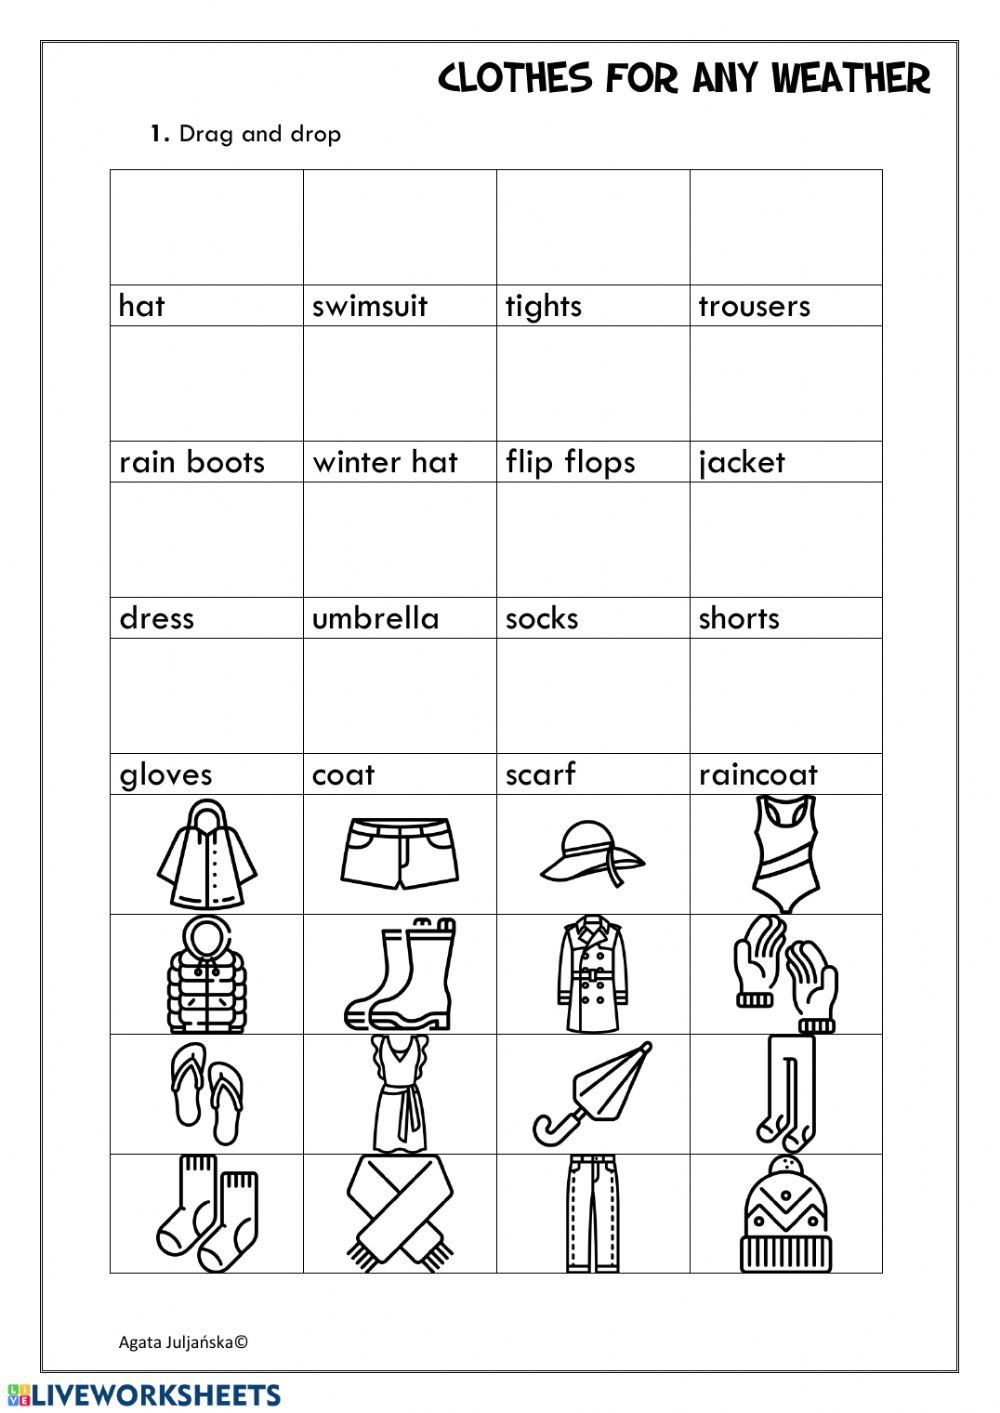 medium resolution of Clothes fo any weather worksheet